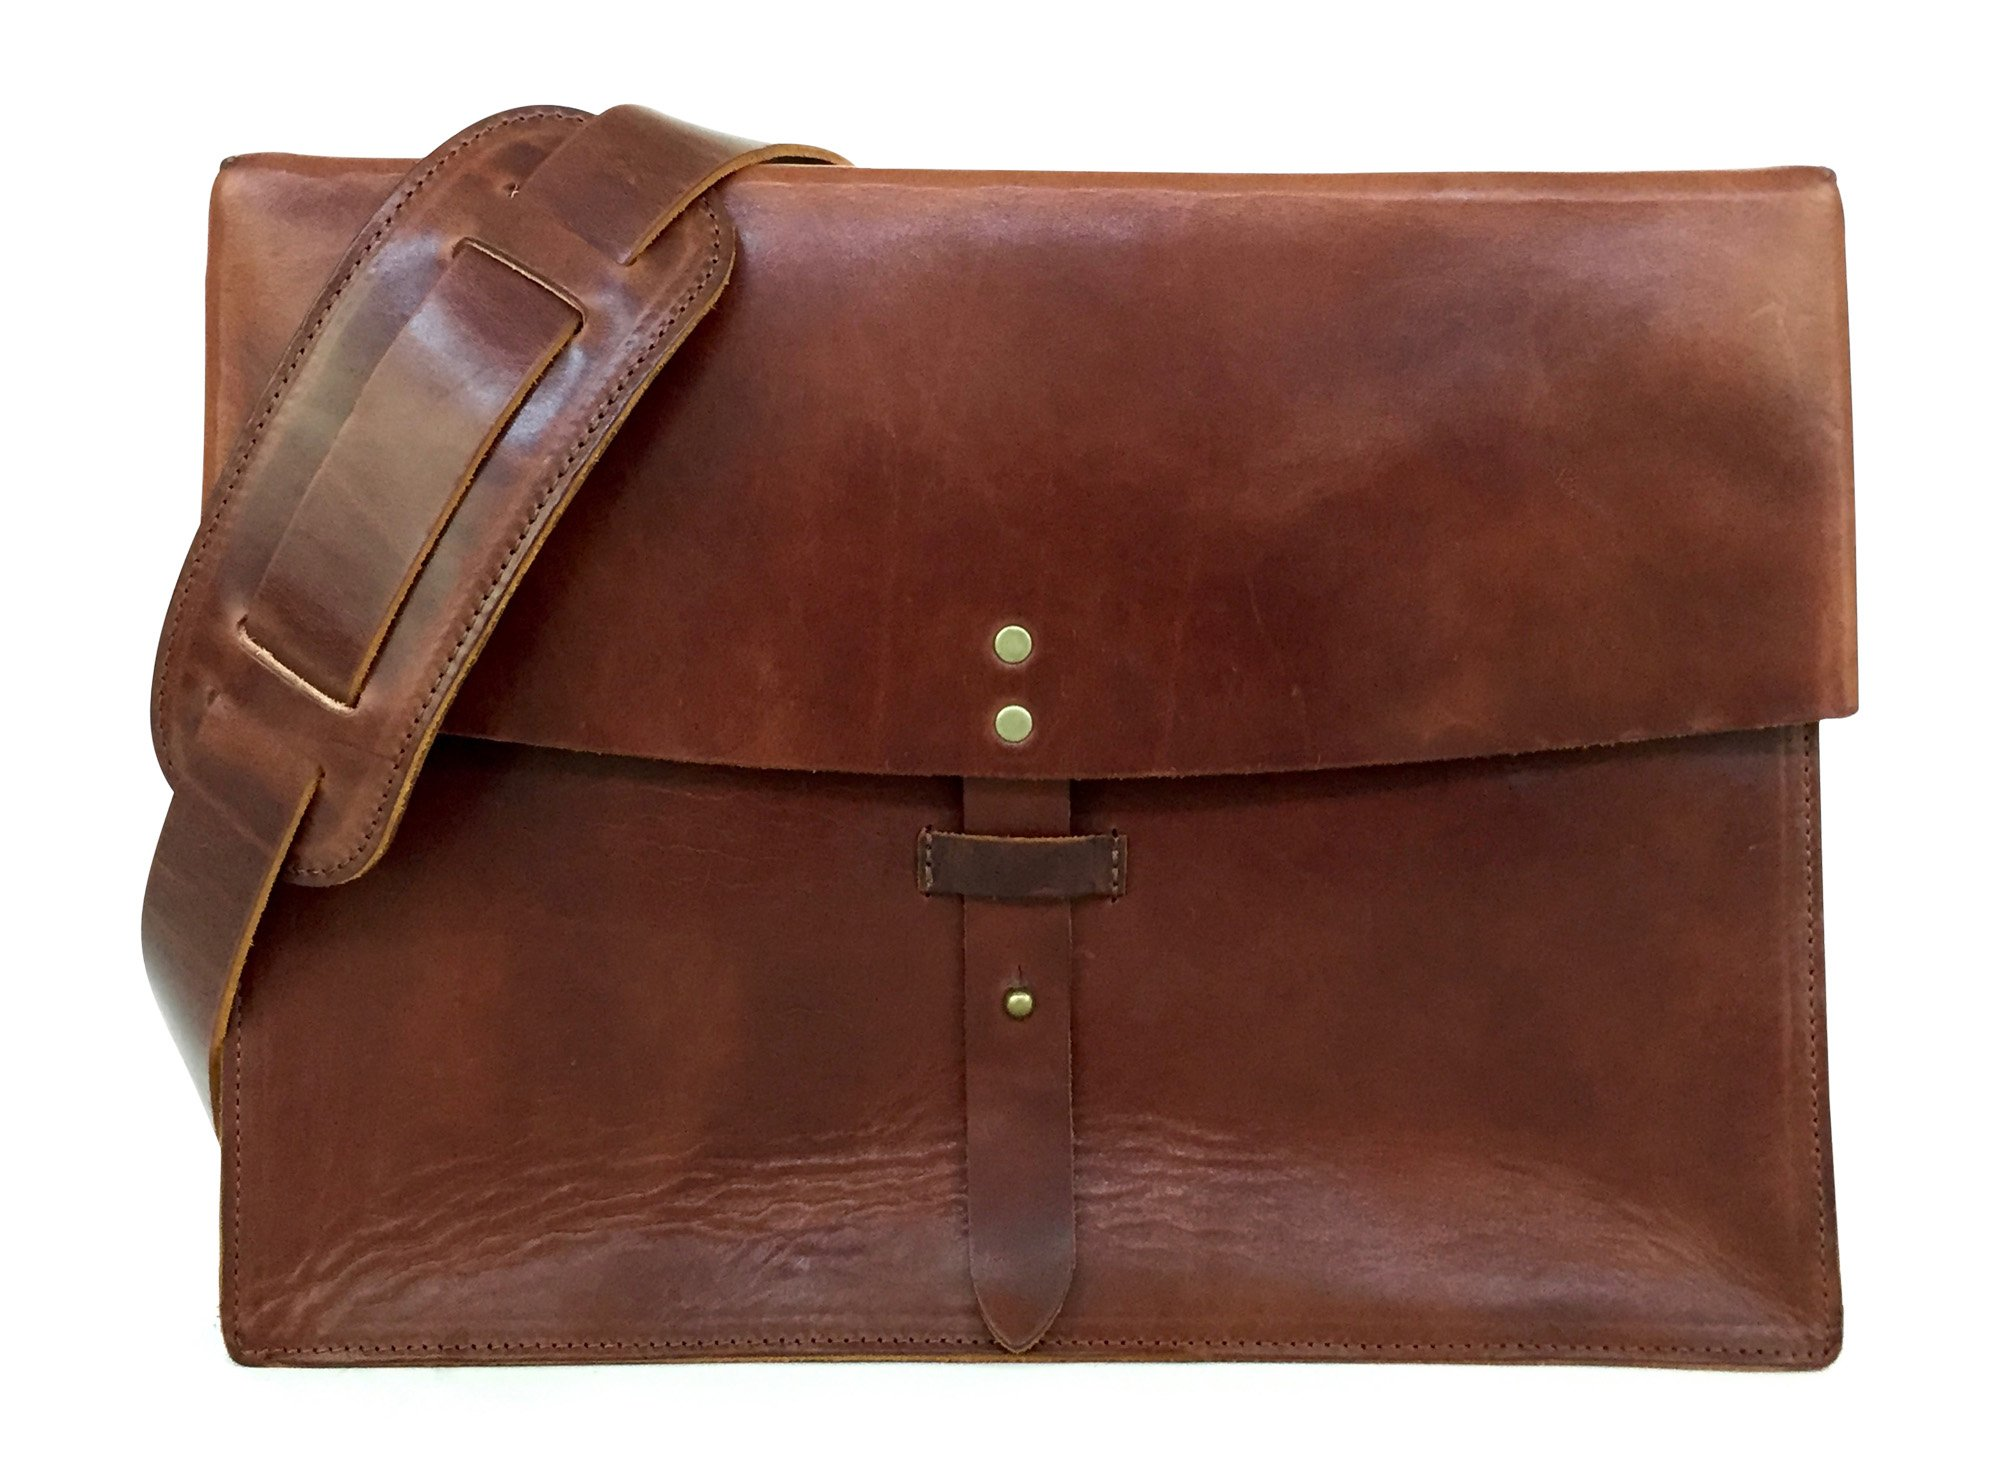 Full Grain Leather Messenger Bag & Laptop Satchel by Jackson Wayne (Vintage Brown)